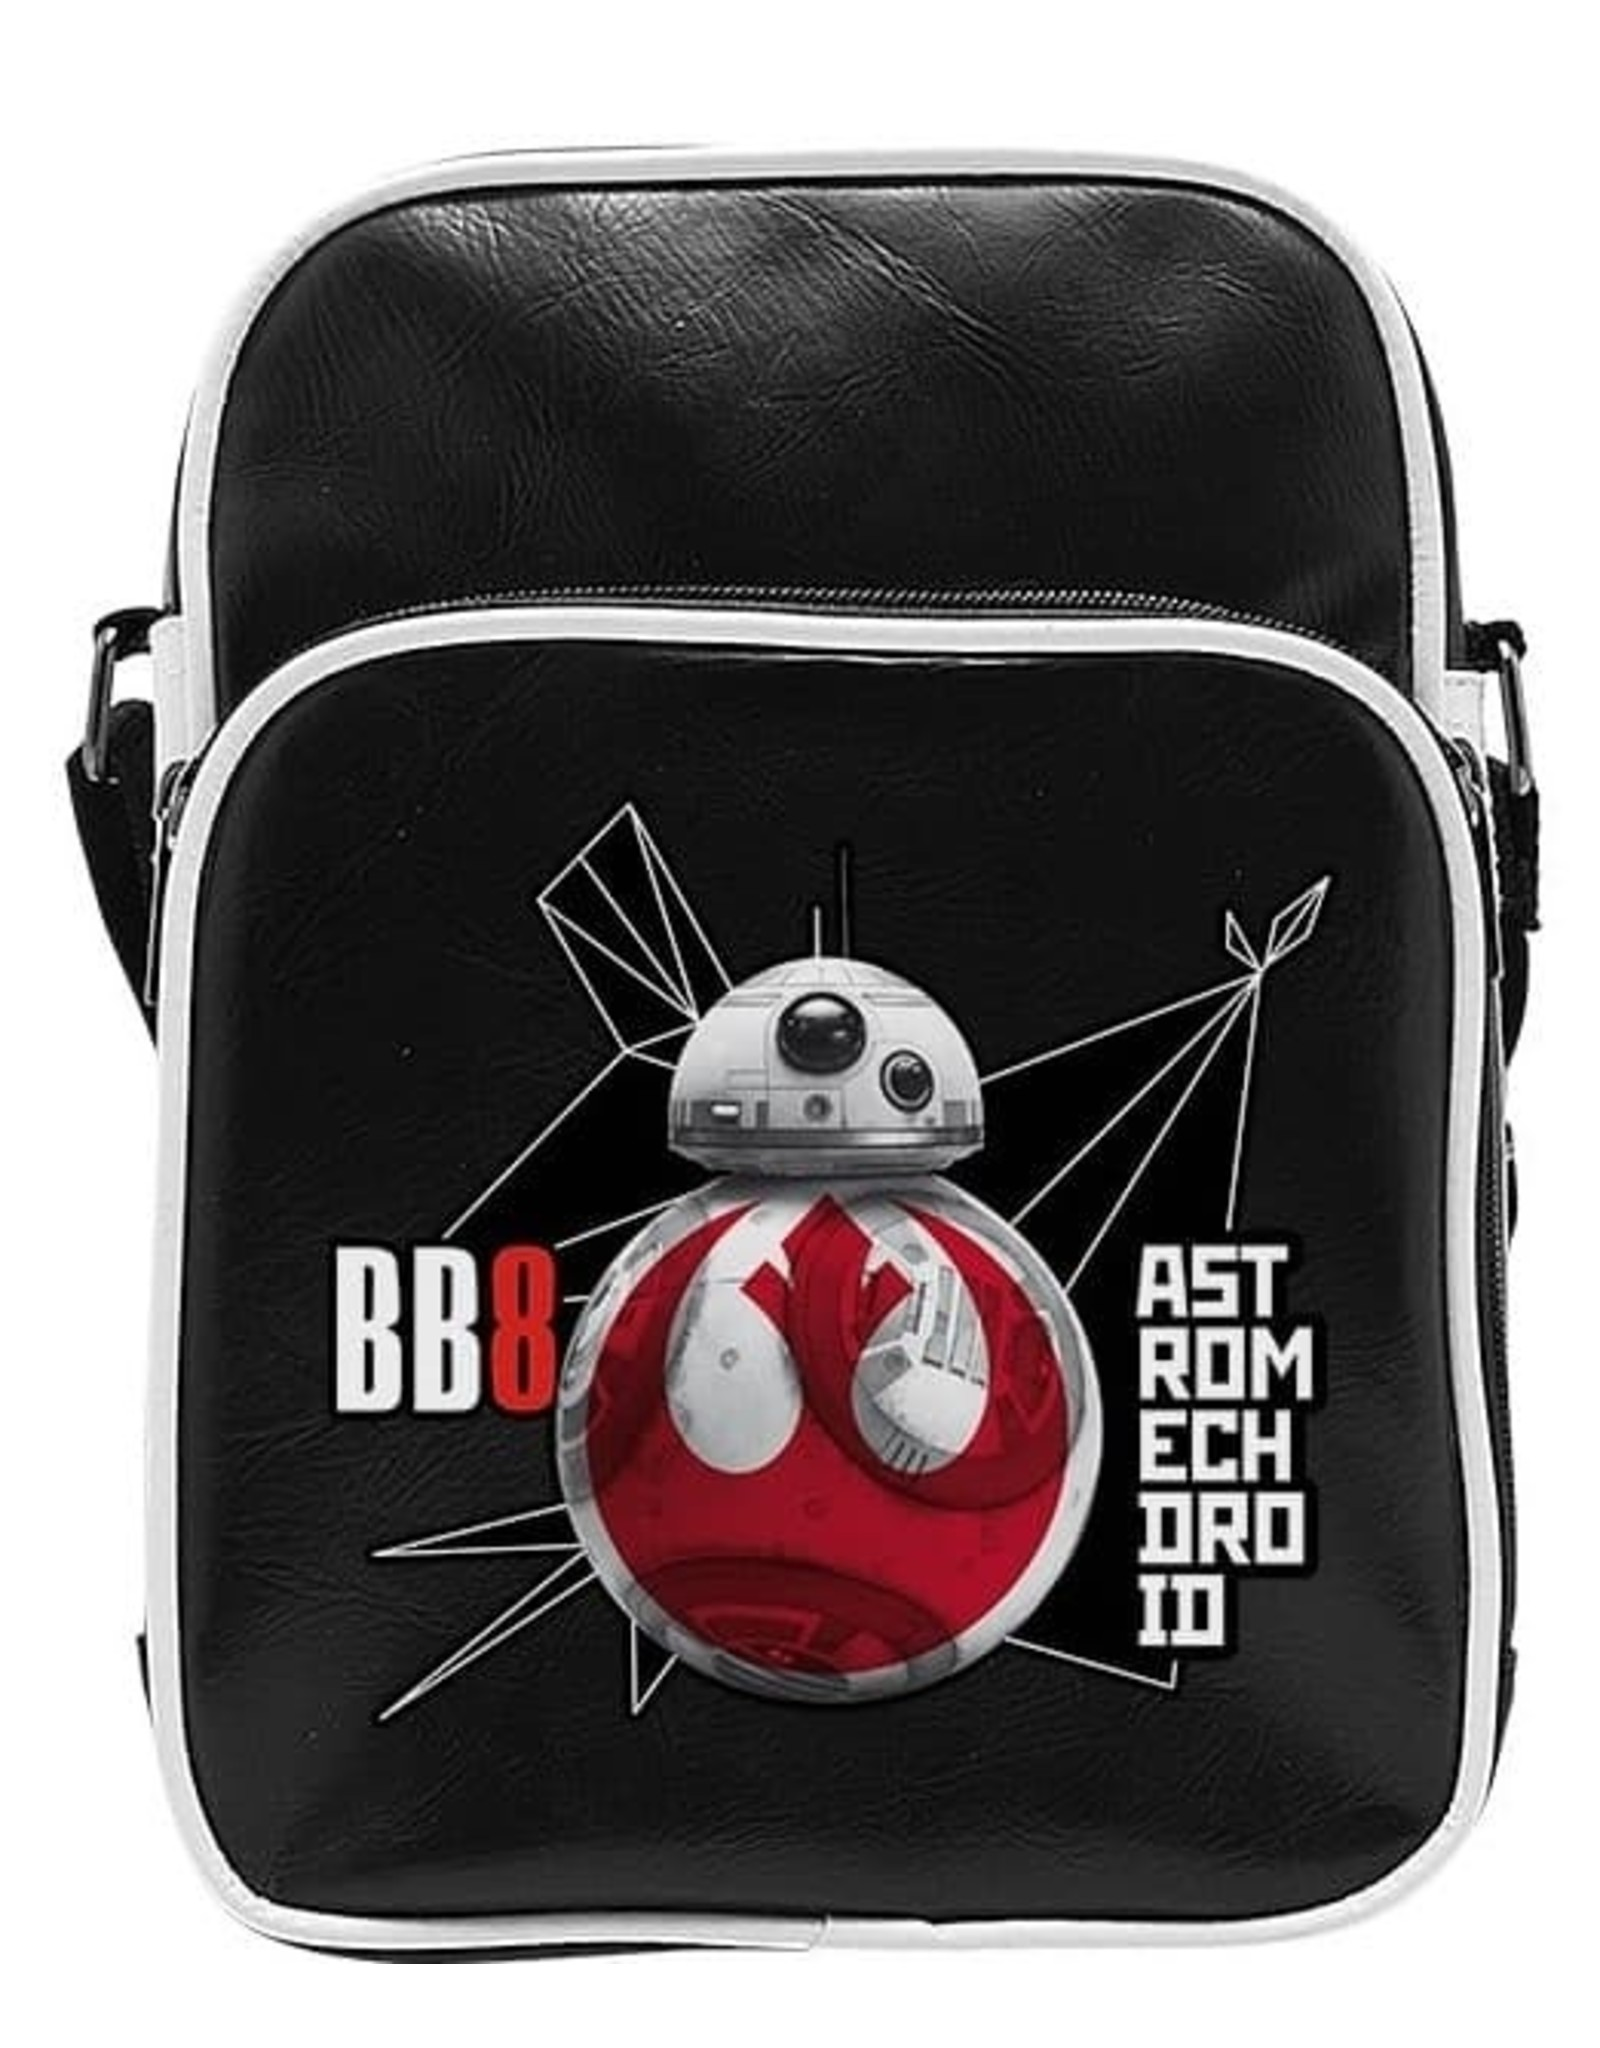 Star Wars Merchandise tassen - Star Wars BB8 E8 schoudertas